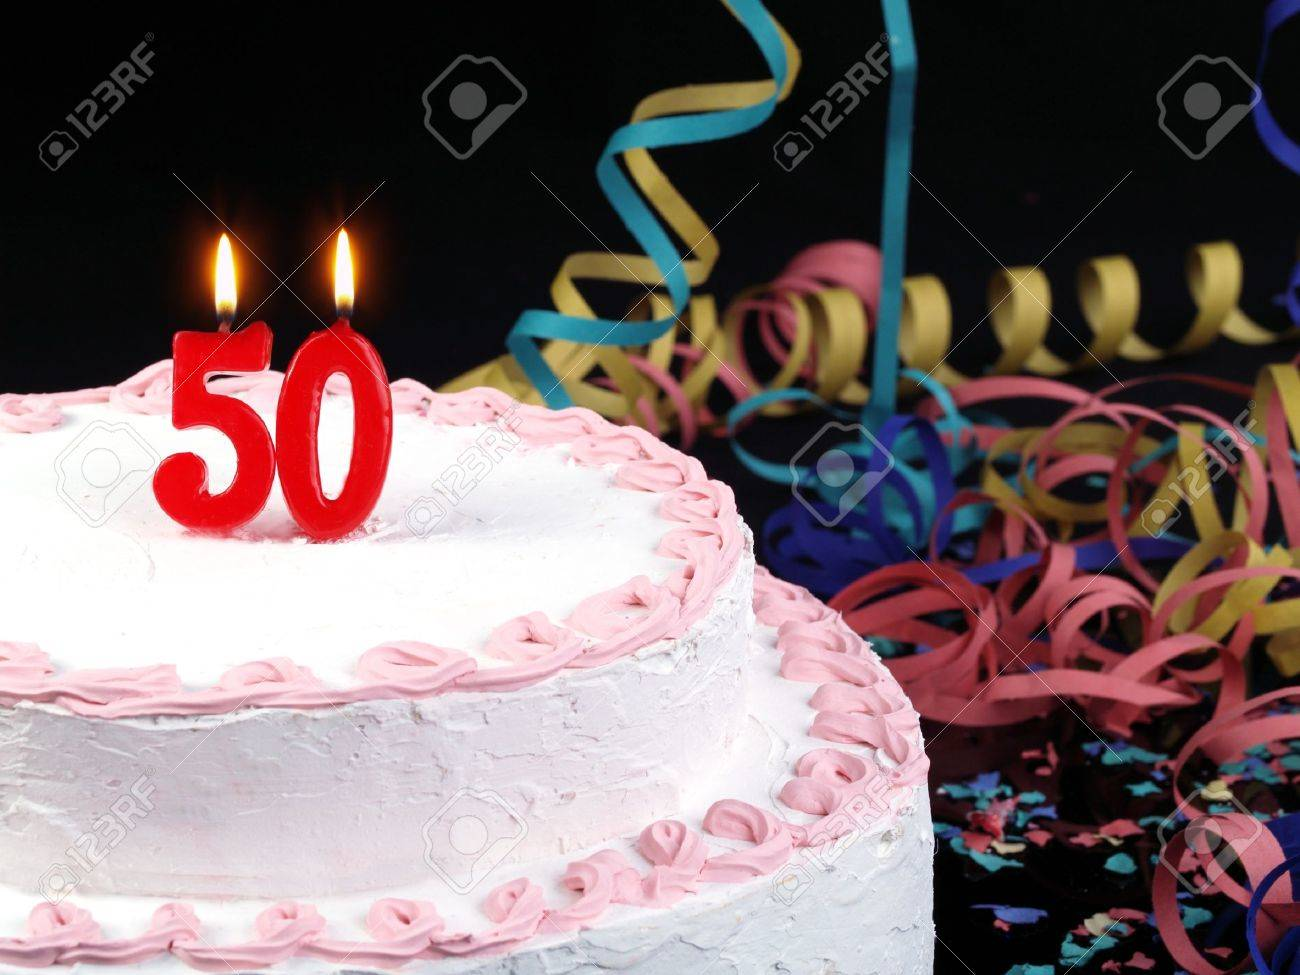 Birthday Cake With Red Candles Showing No 50 Stock Photo Picture